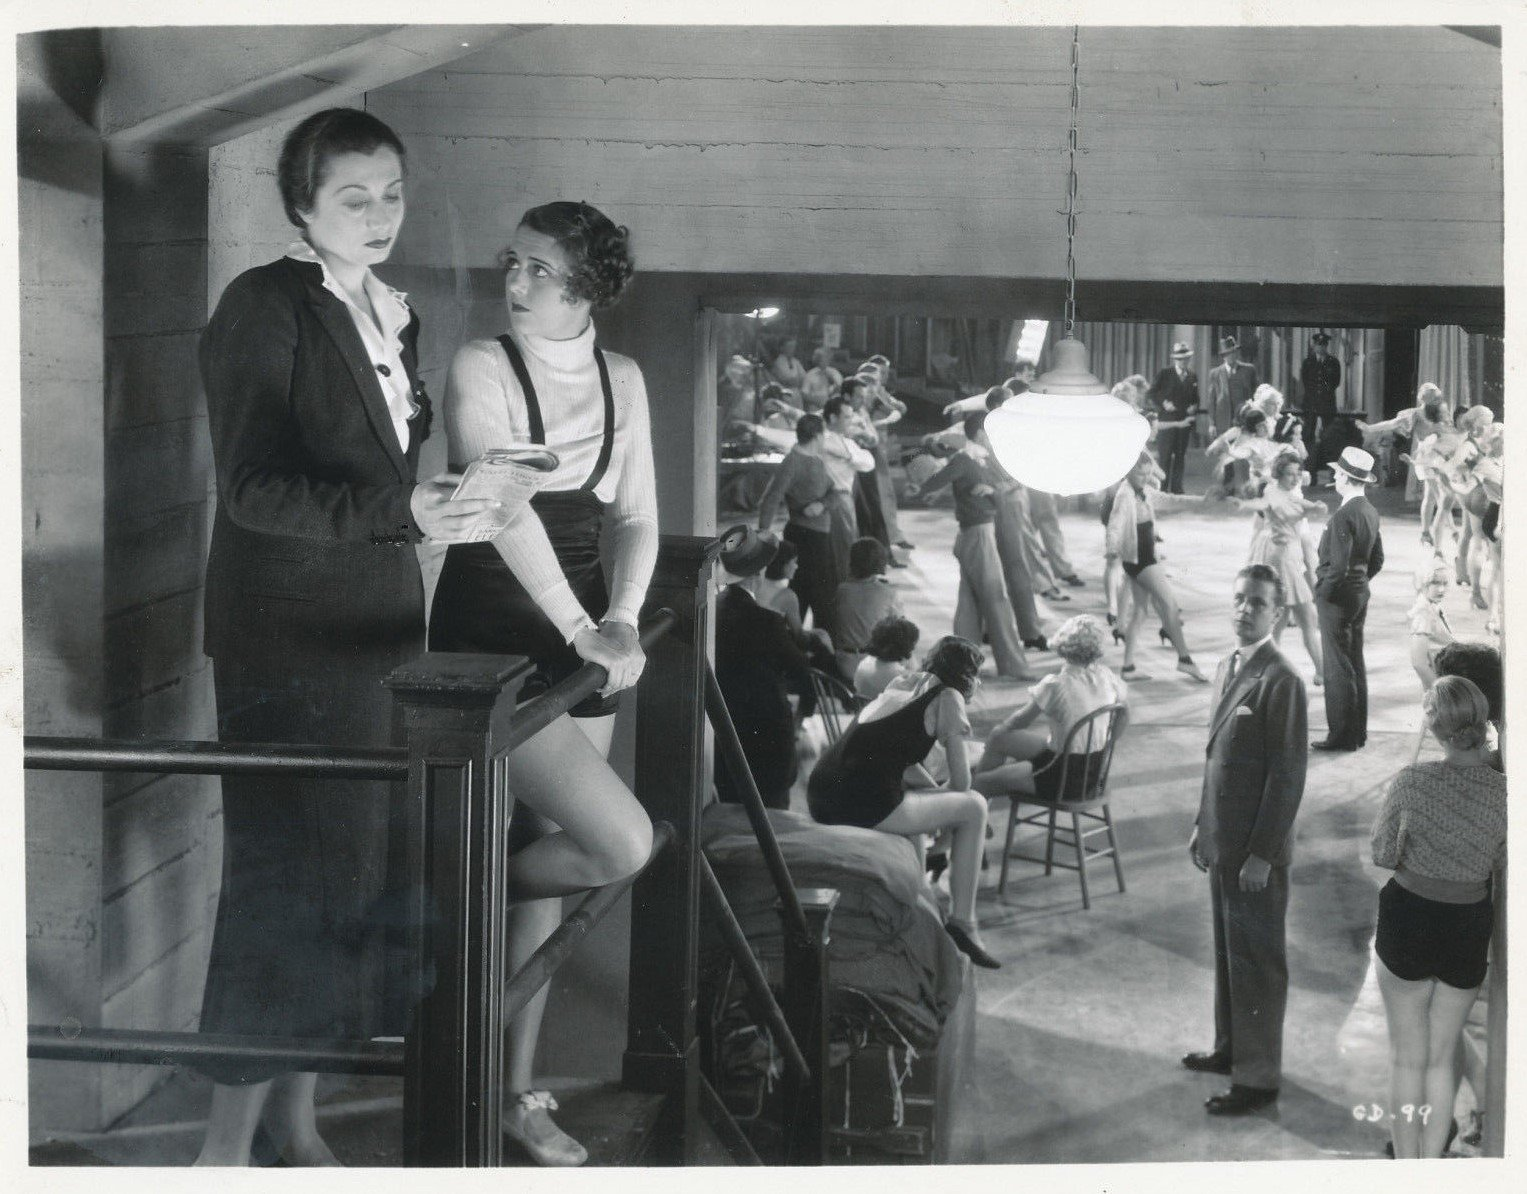 Loretta Andrews, Monica Bannister, Bonnie Bannon, Joan Barclay, Audrene Brier, Lynn Browning, Edna Callahan, Maxine Cantway, Dorothy Coonan Wellman, Ruby Keeler, Aline MacMahon, Dick Powell, Ned Sparks, Anita Thompson, Dorothy White, and Millie Walters in Gold Diggers of 1933 (1933)